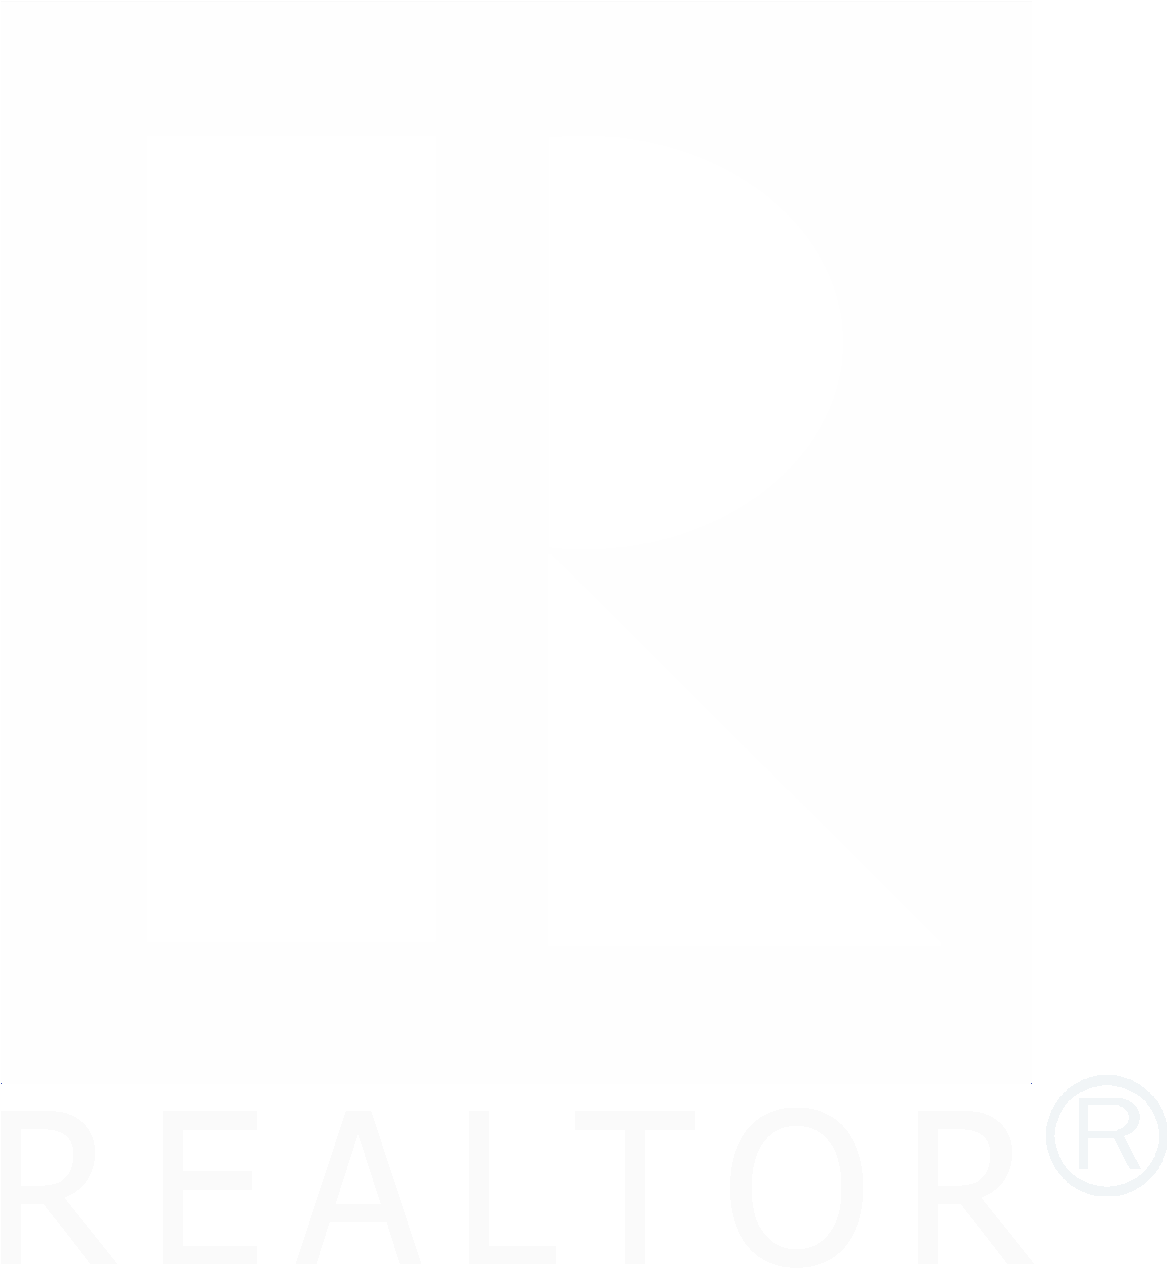 REALTOR LOGO WHITE TRANSPARENT